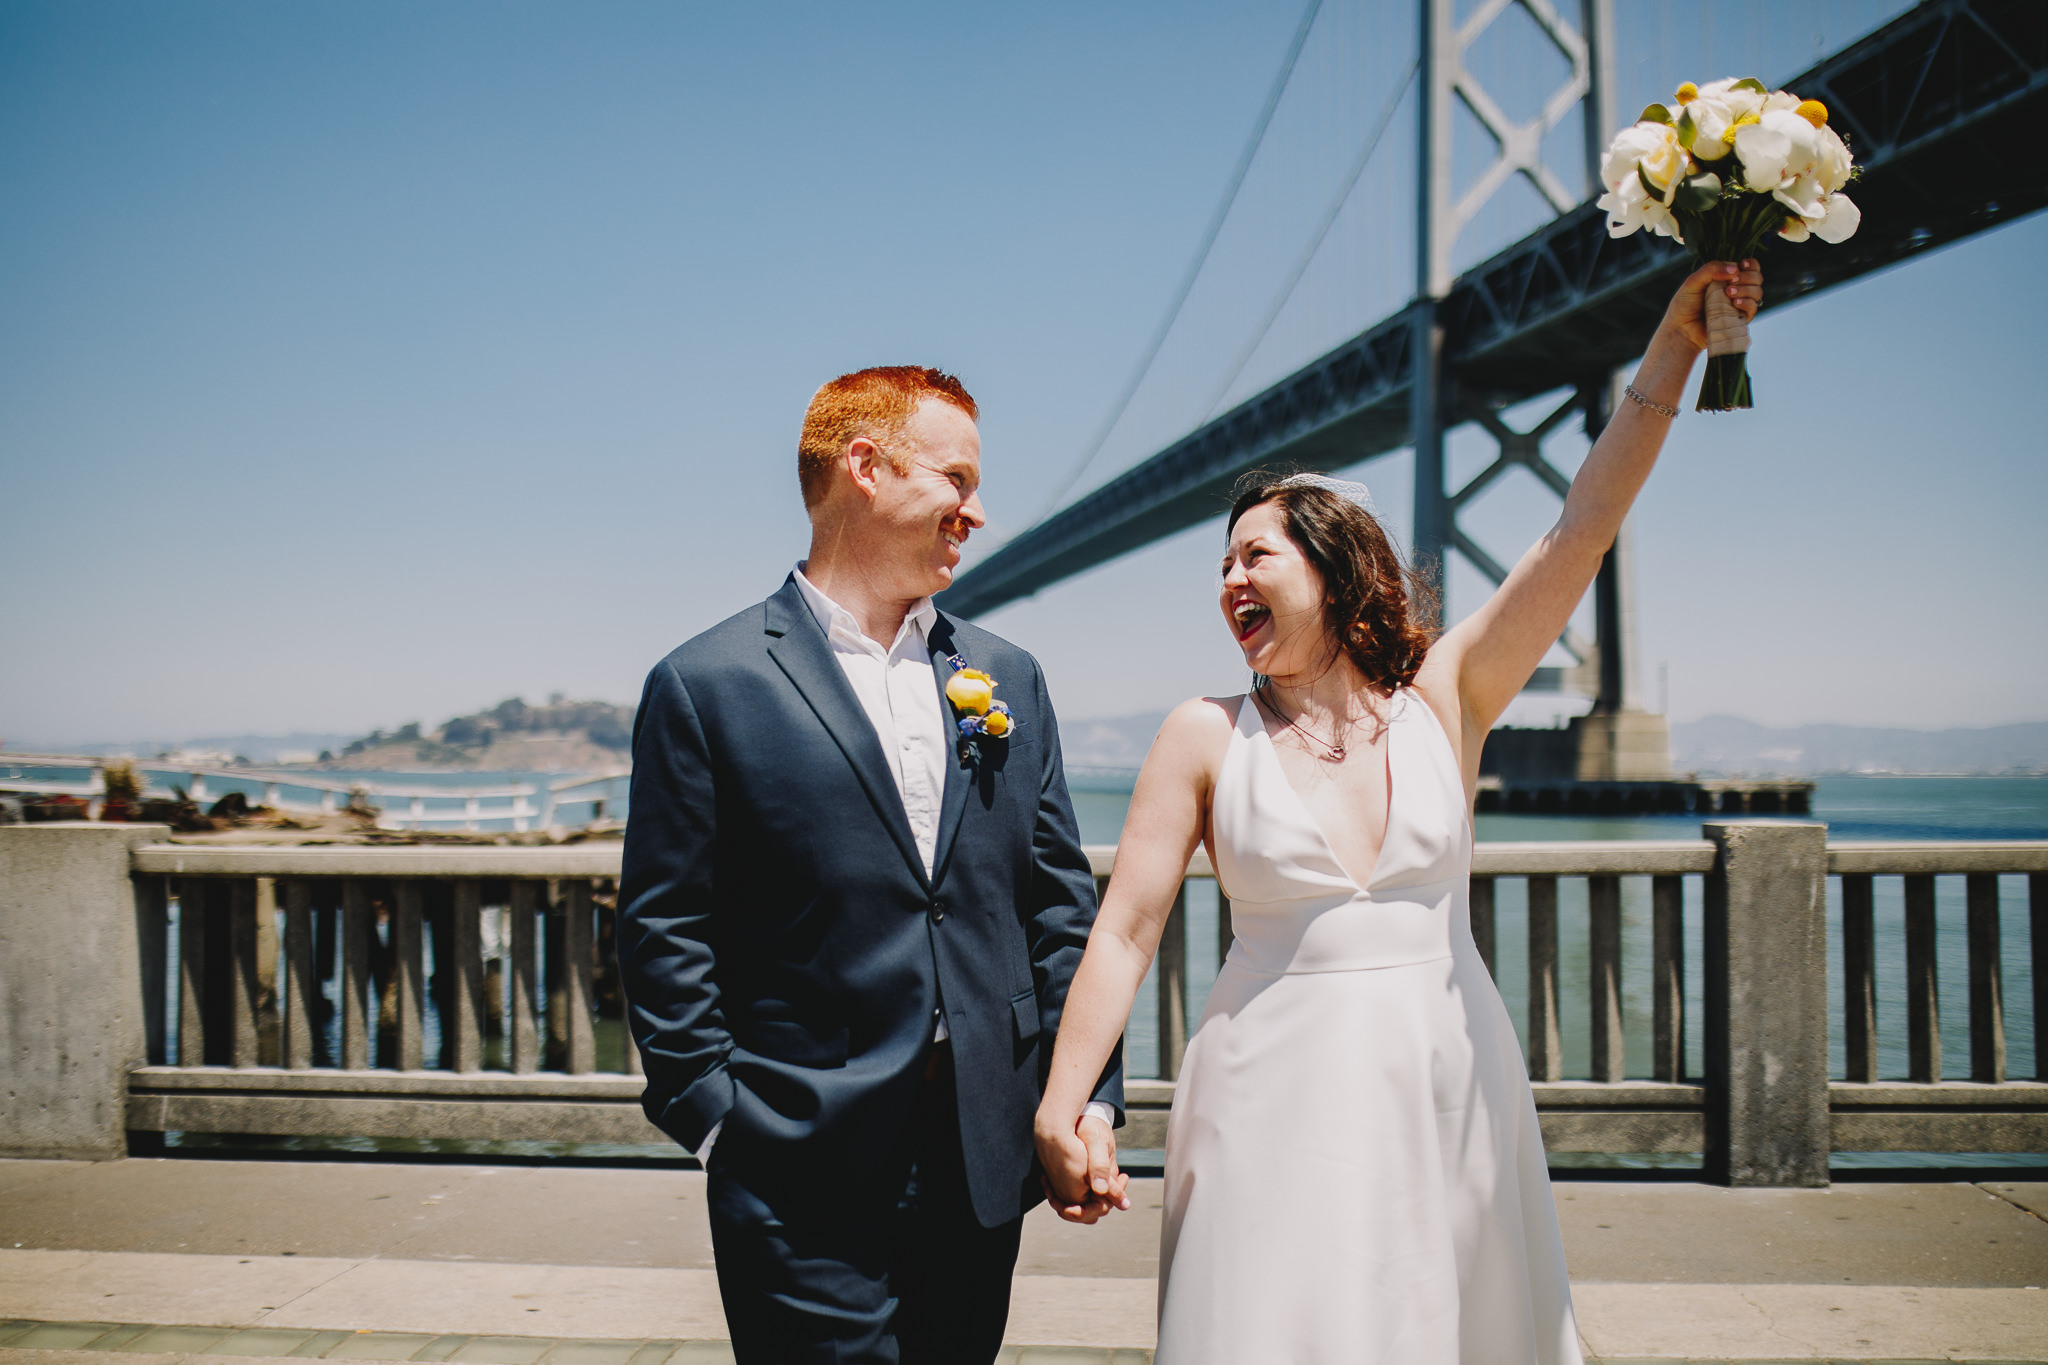 Archer Inspired Photography SF City Hall Elopement Wedding Lifestyle Documentary Affordable Photographer-300.jpg